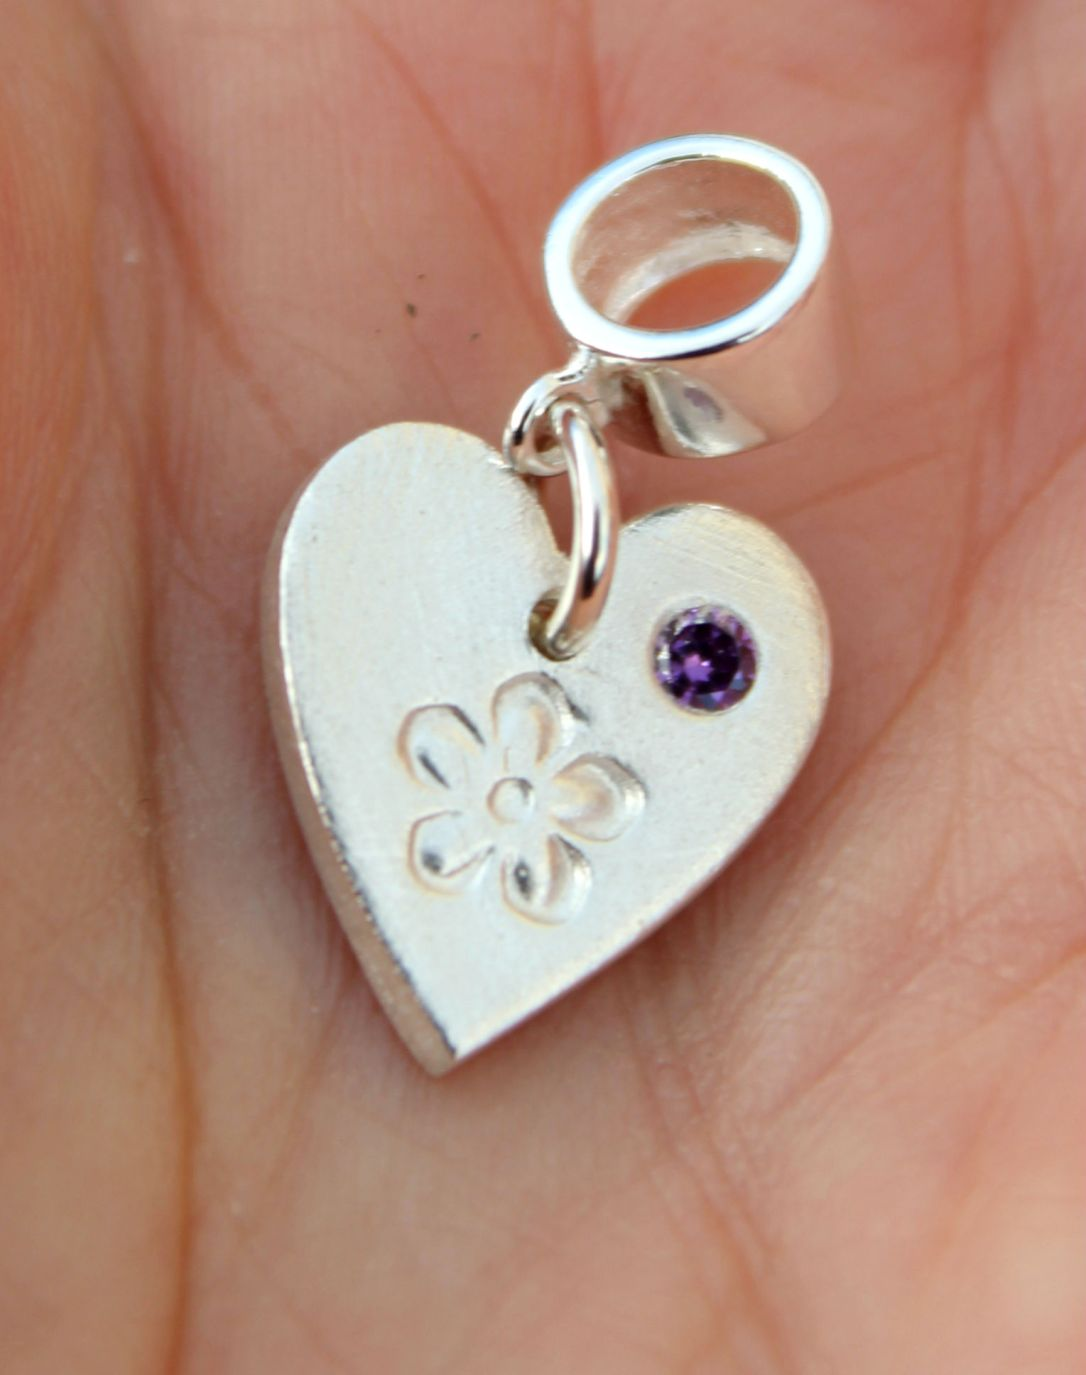 Tiny Pandora heart charm with flower and inset amethyst zirconia by Little Silver Hedgehog